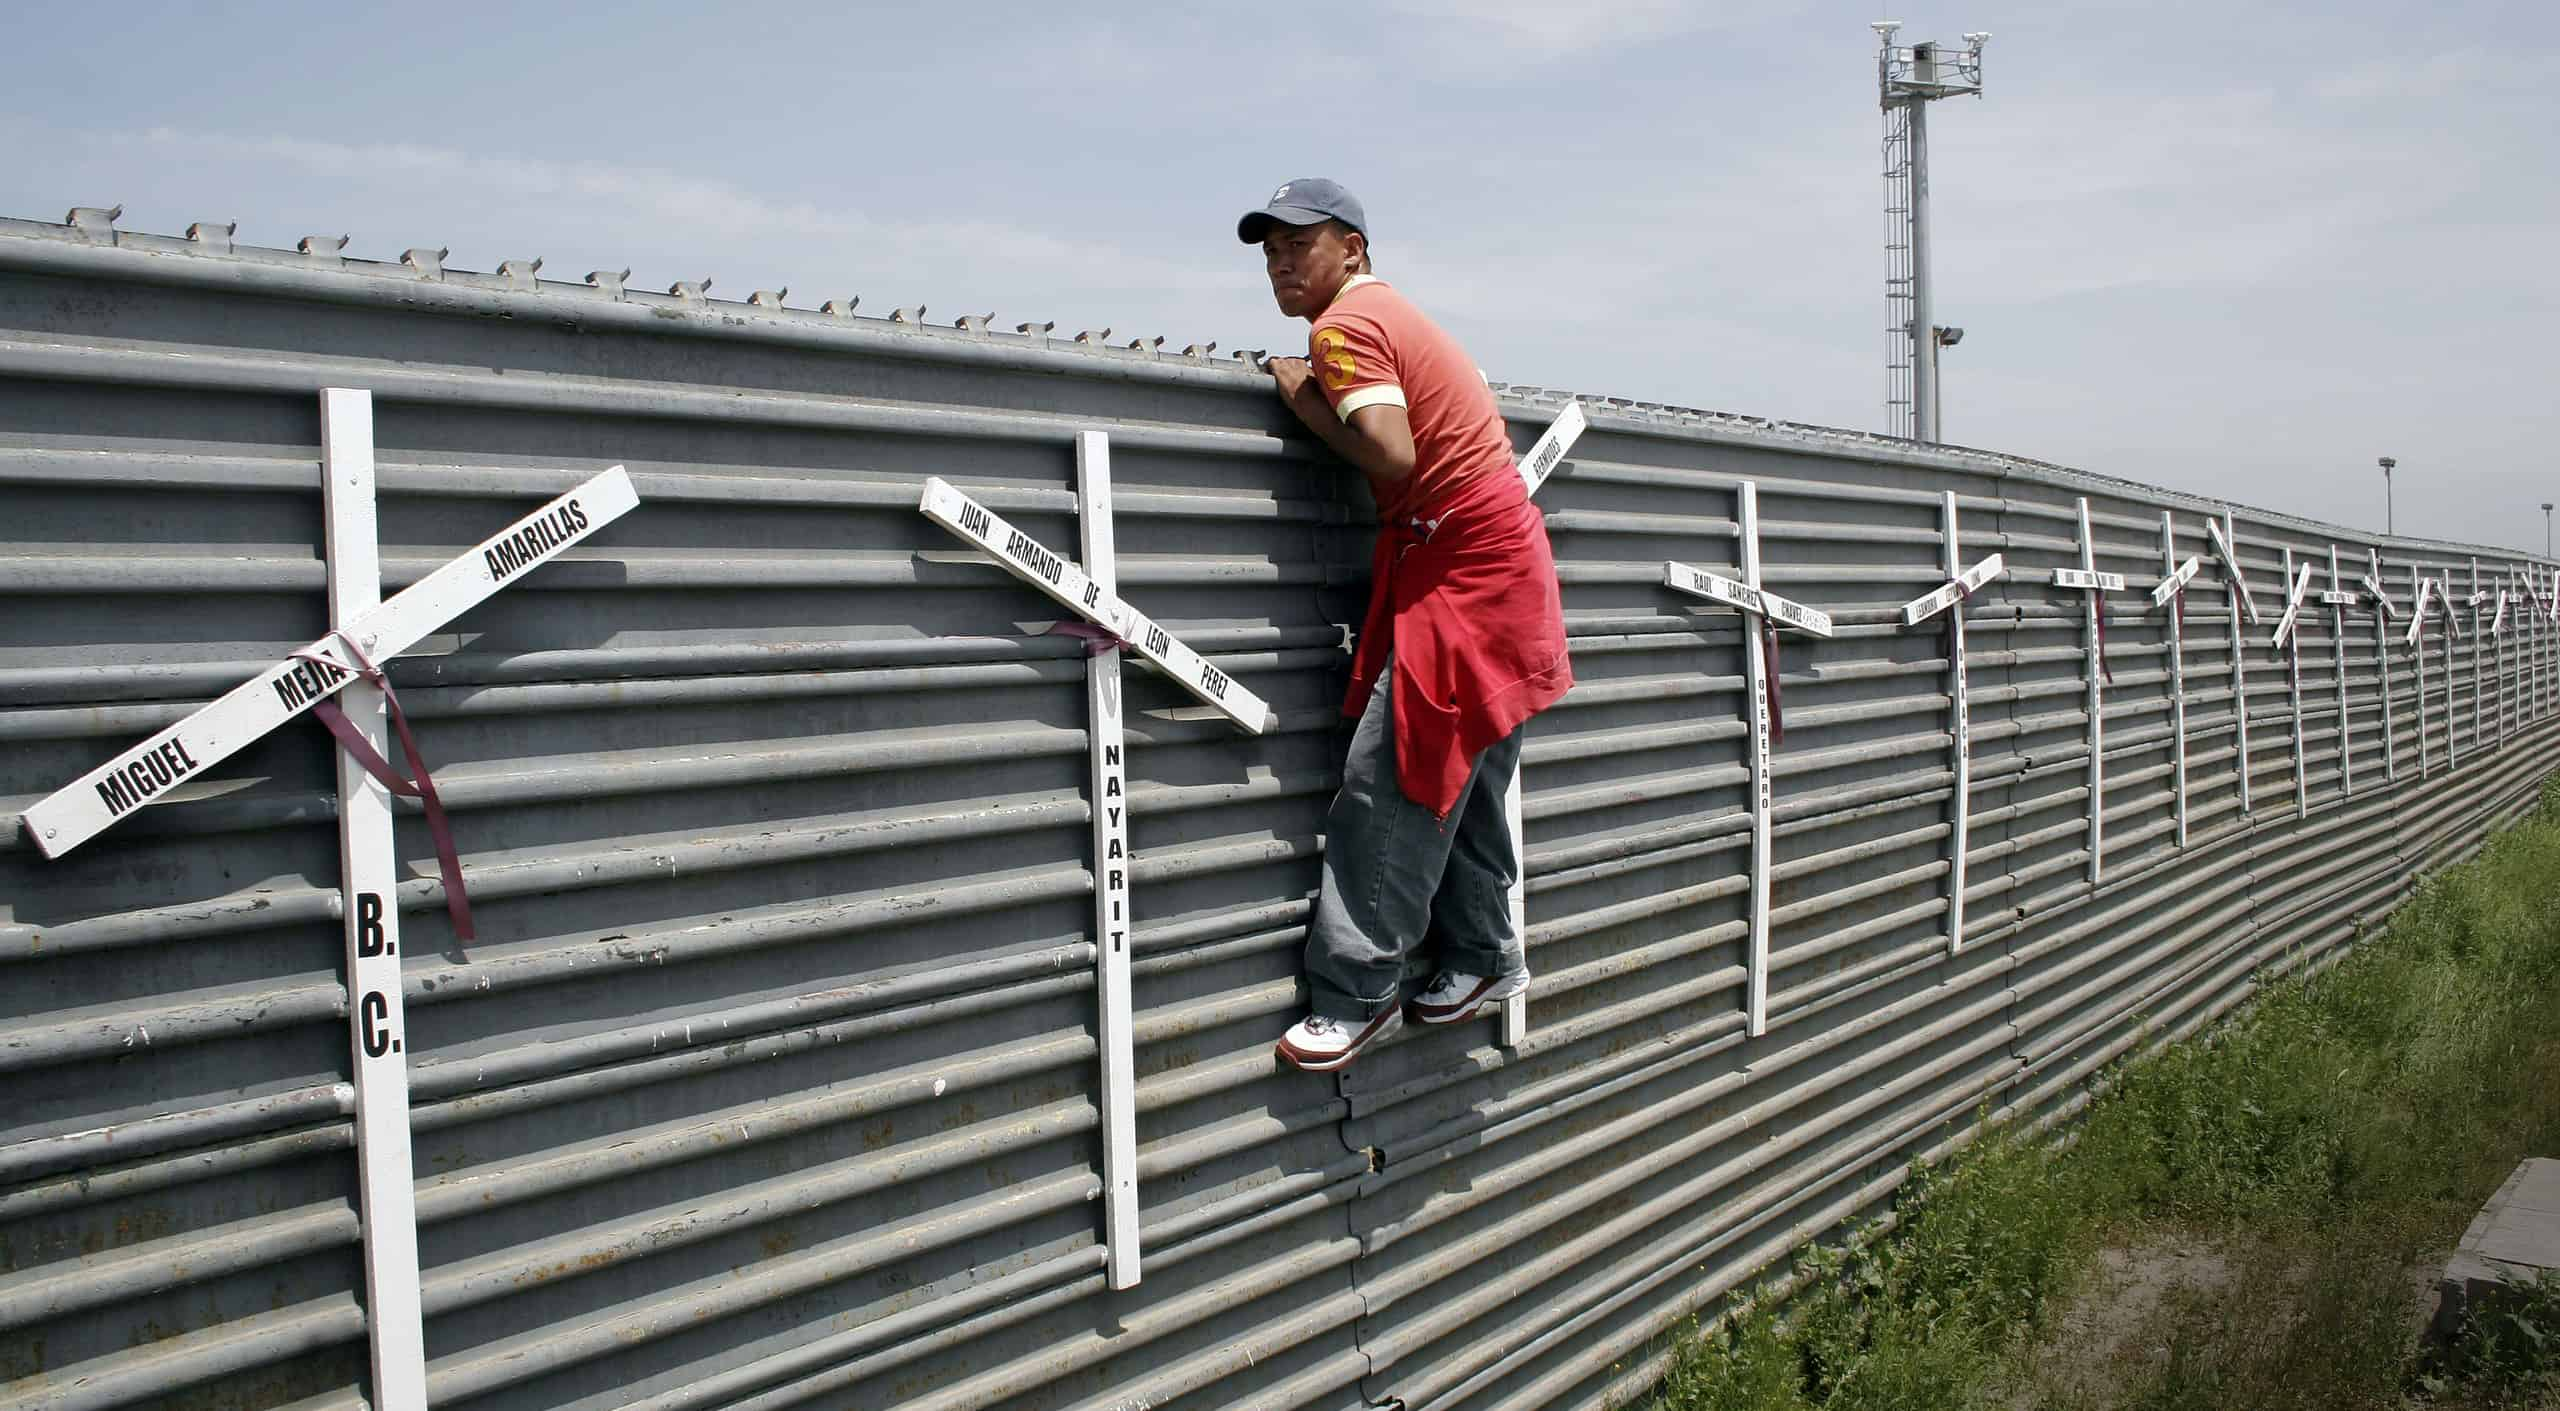 A man holds on to the side of a tall fence. White crosses are attached to the fence.